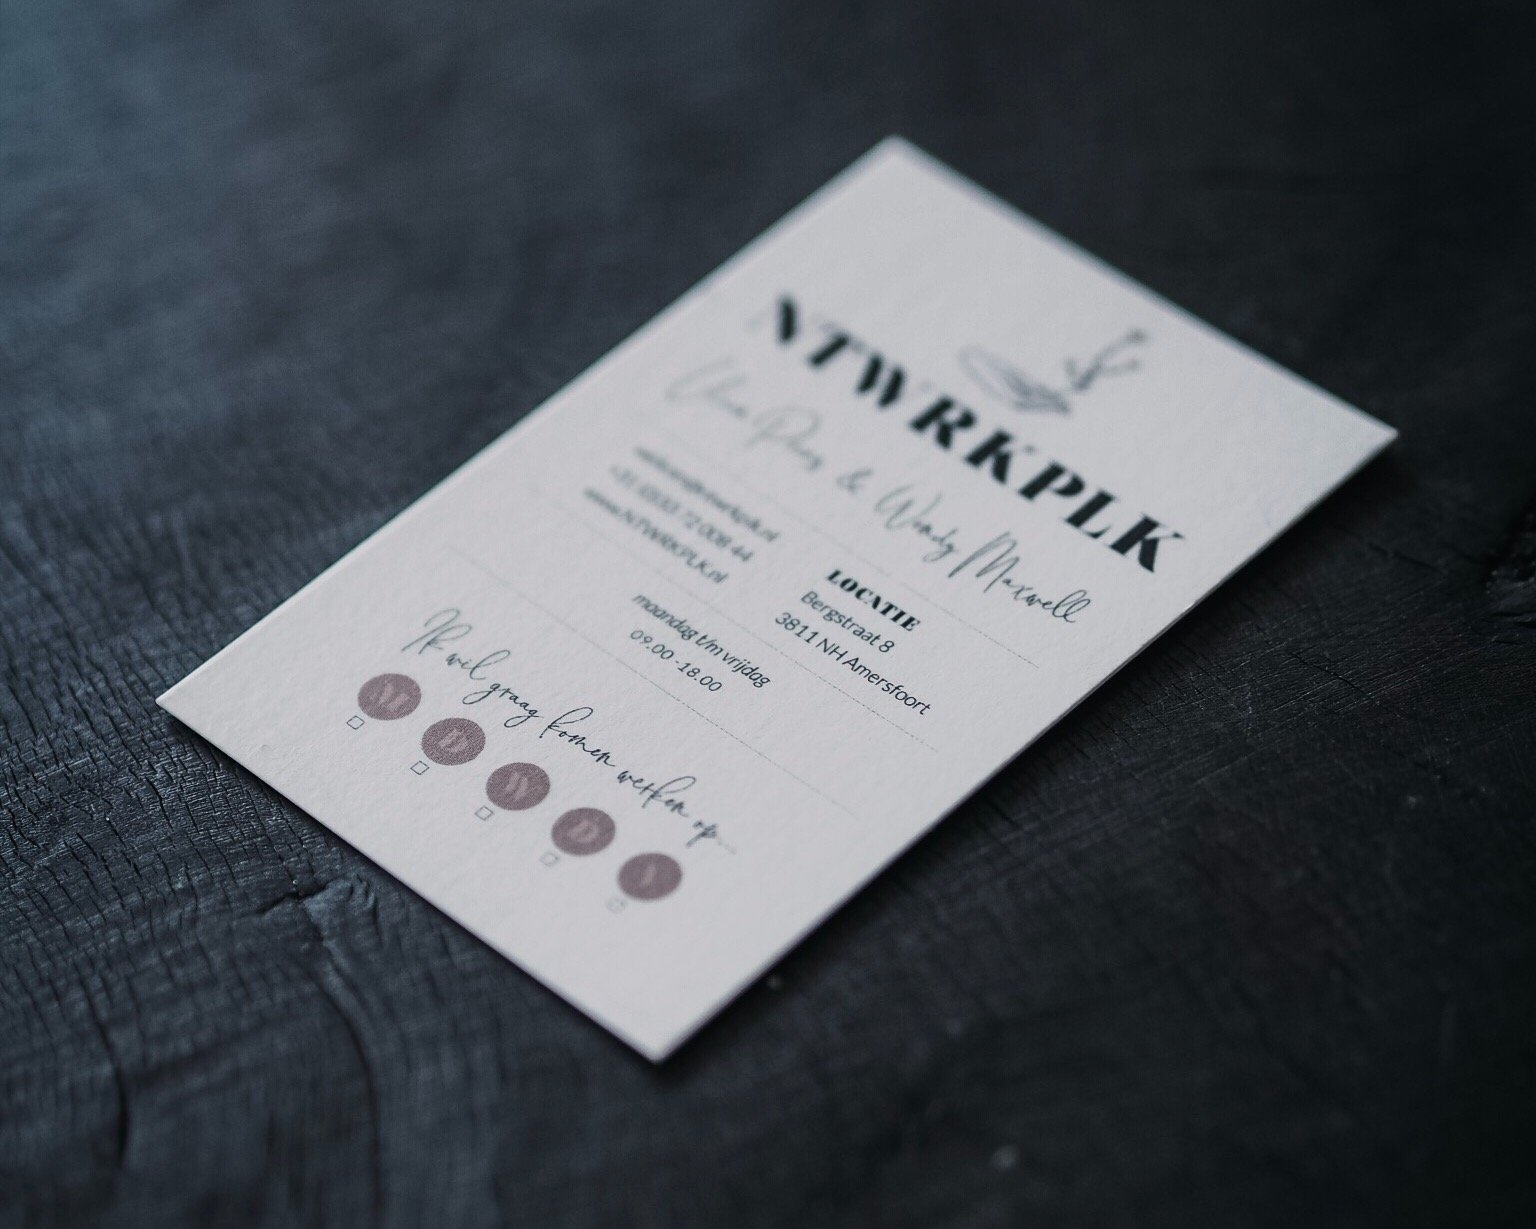 NTWRKPLK brand identity & logo design | Fiona Gobbo Creative | Business cards for THE womens network meetup in Amersfoort